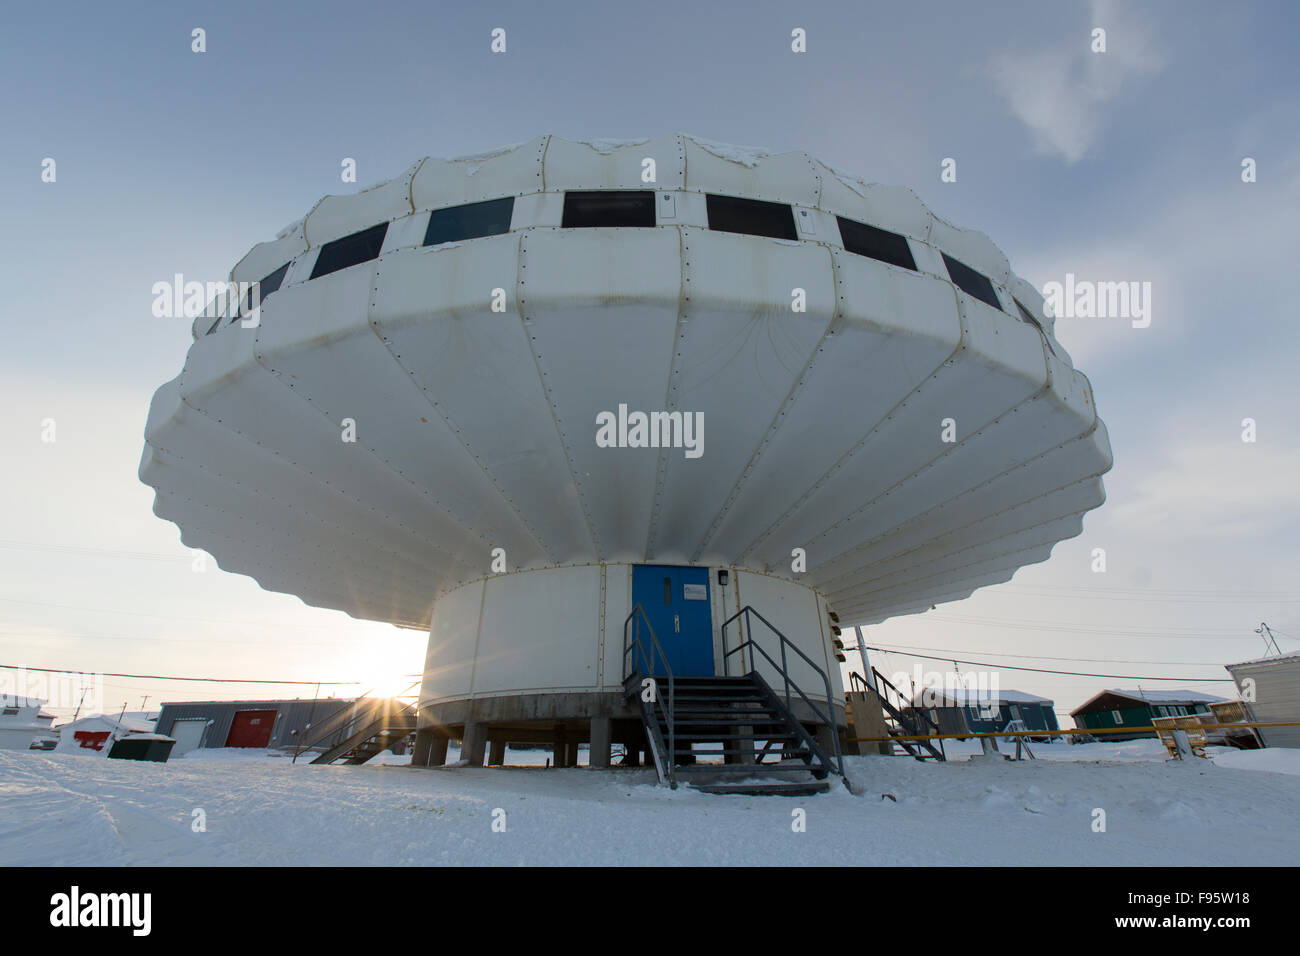 A government research centre in Igloolik, Nunavut, Canada. - Stock Image